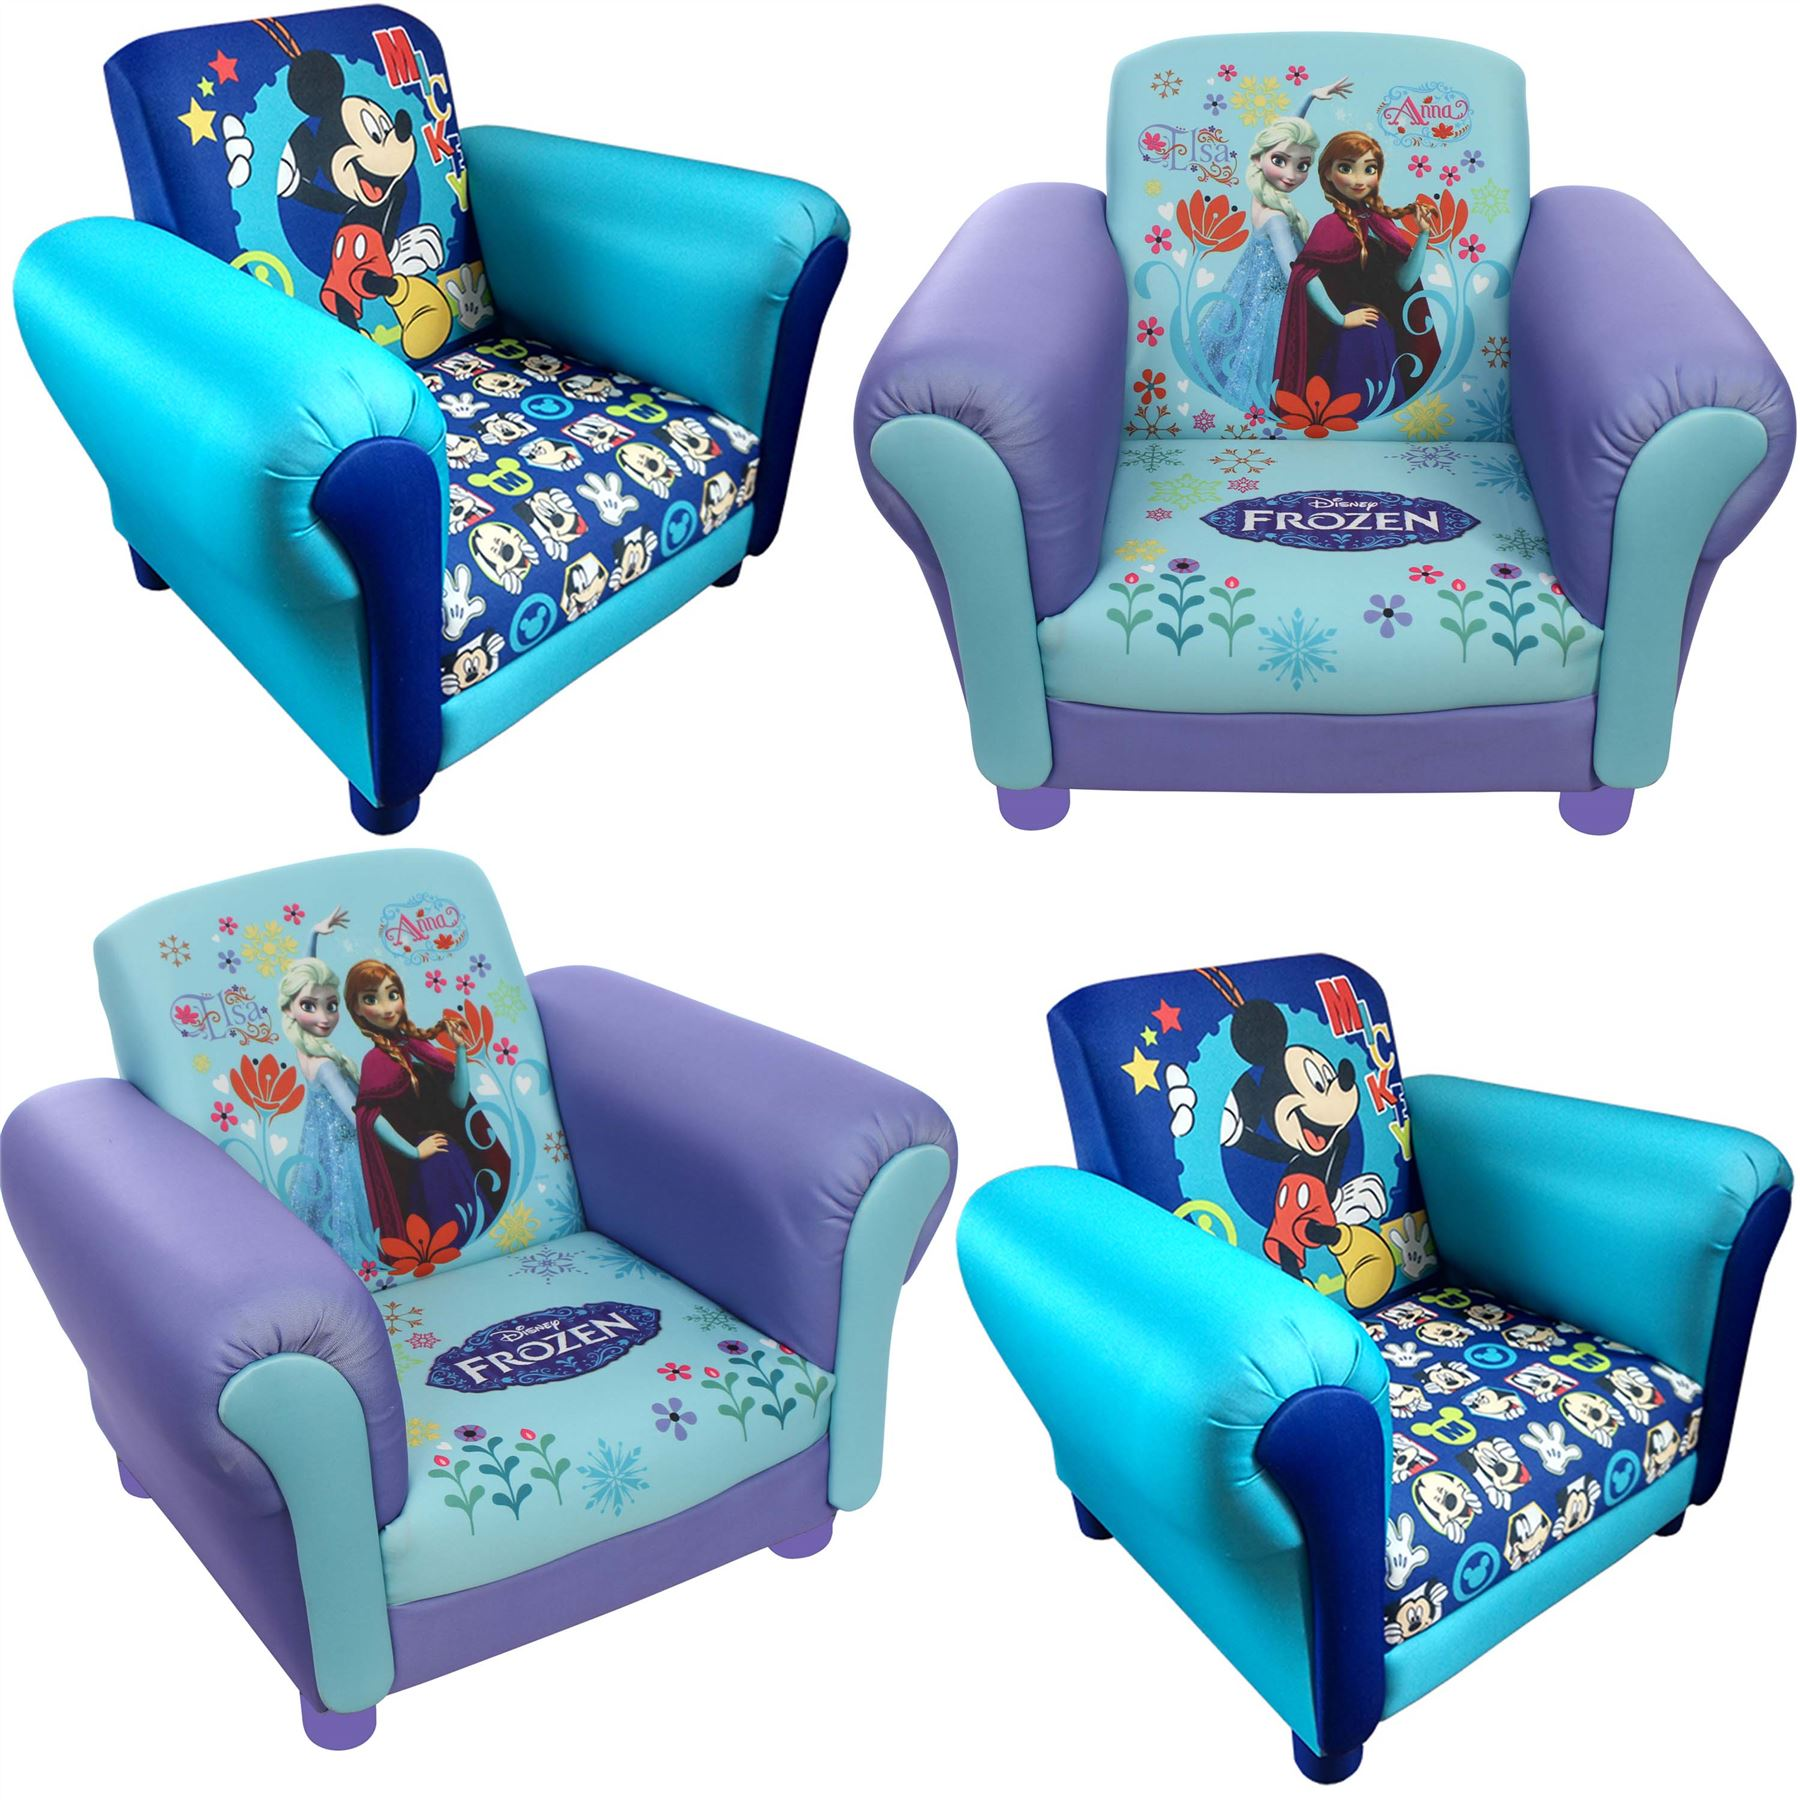 Elsa Chair Children 39s Princess Frozen Elsa And Anna Upholstered Chair